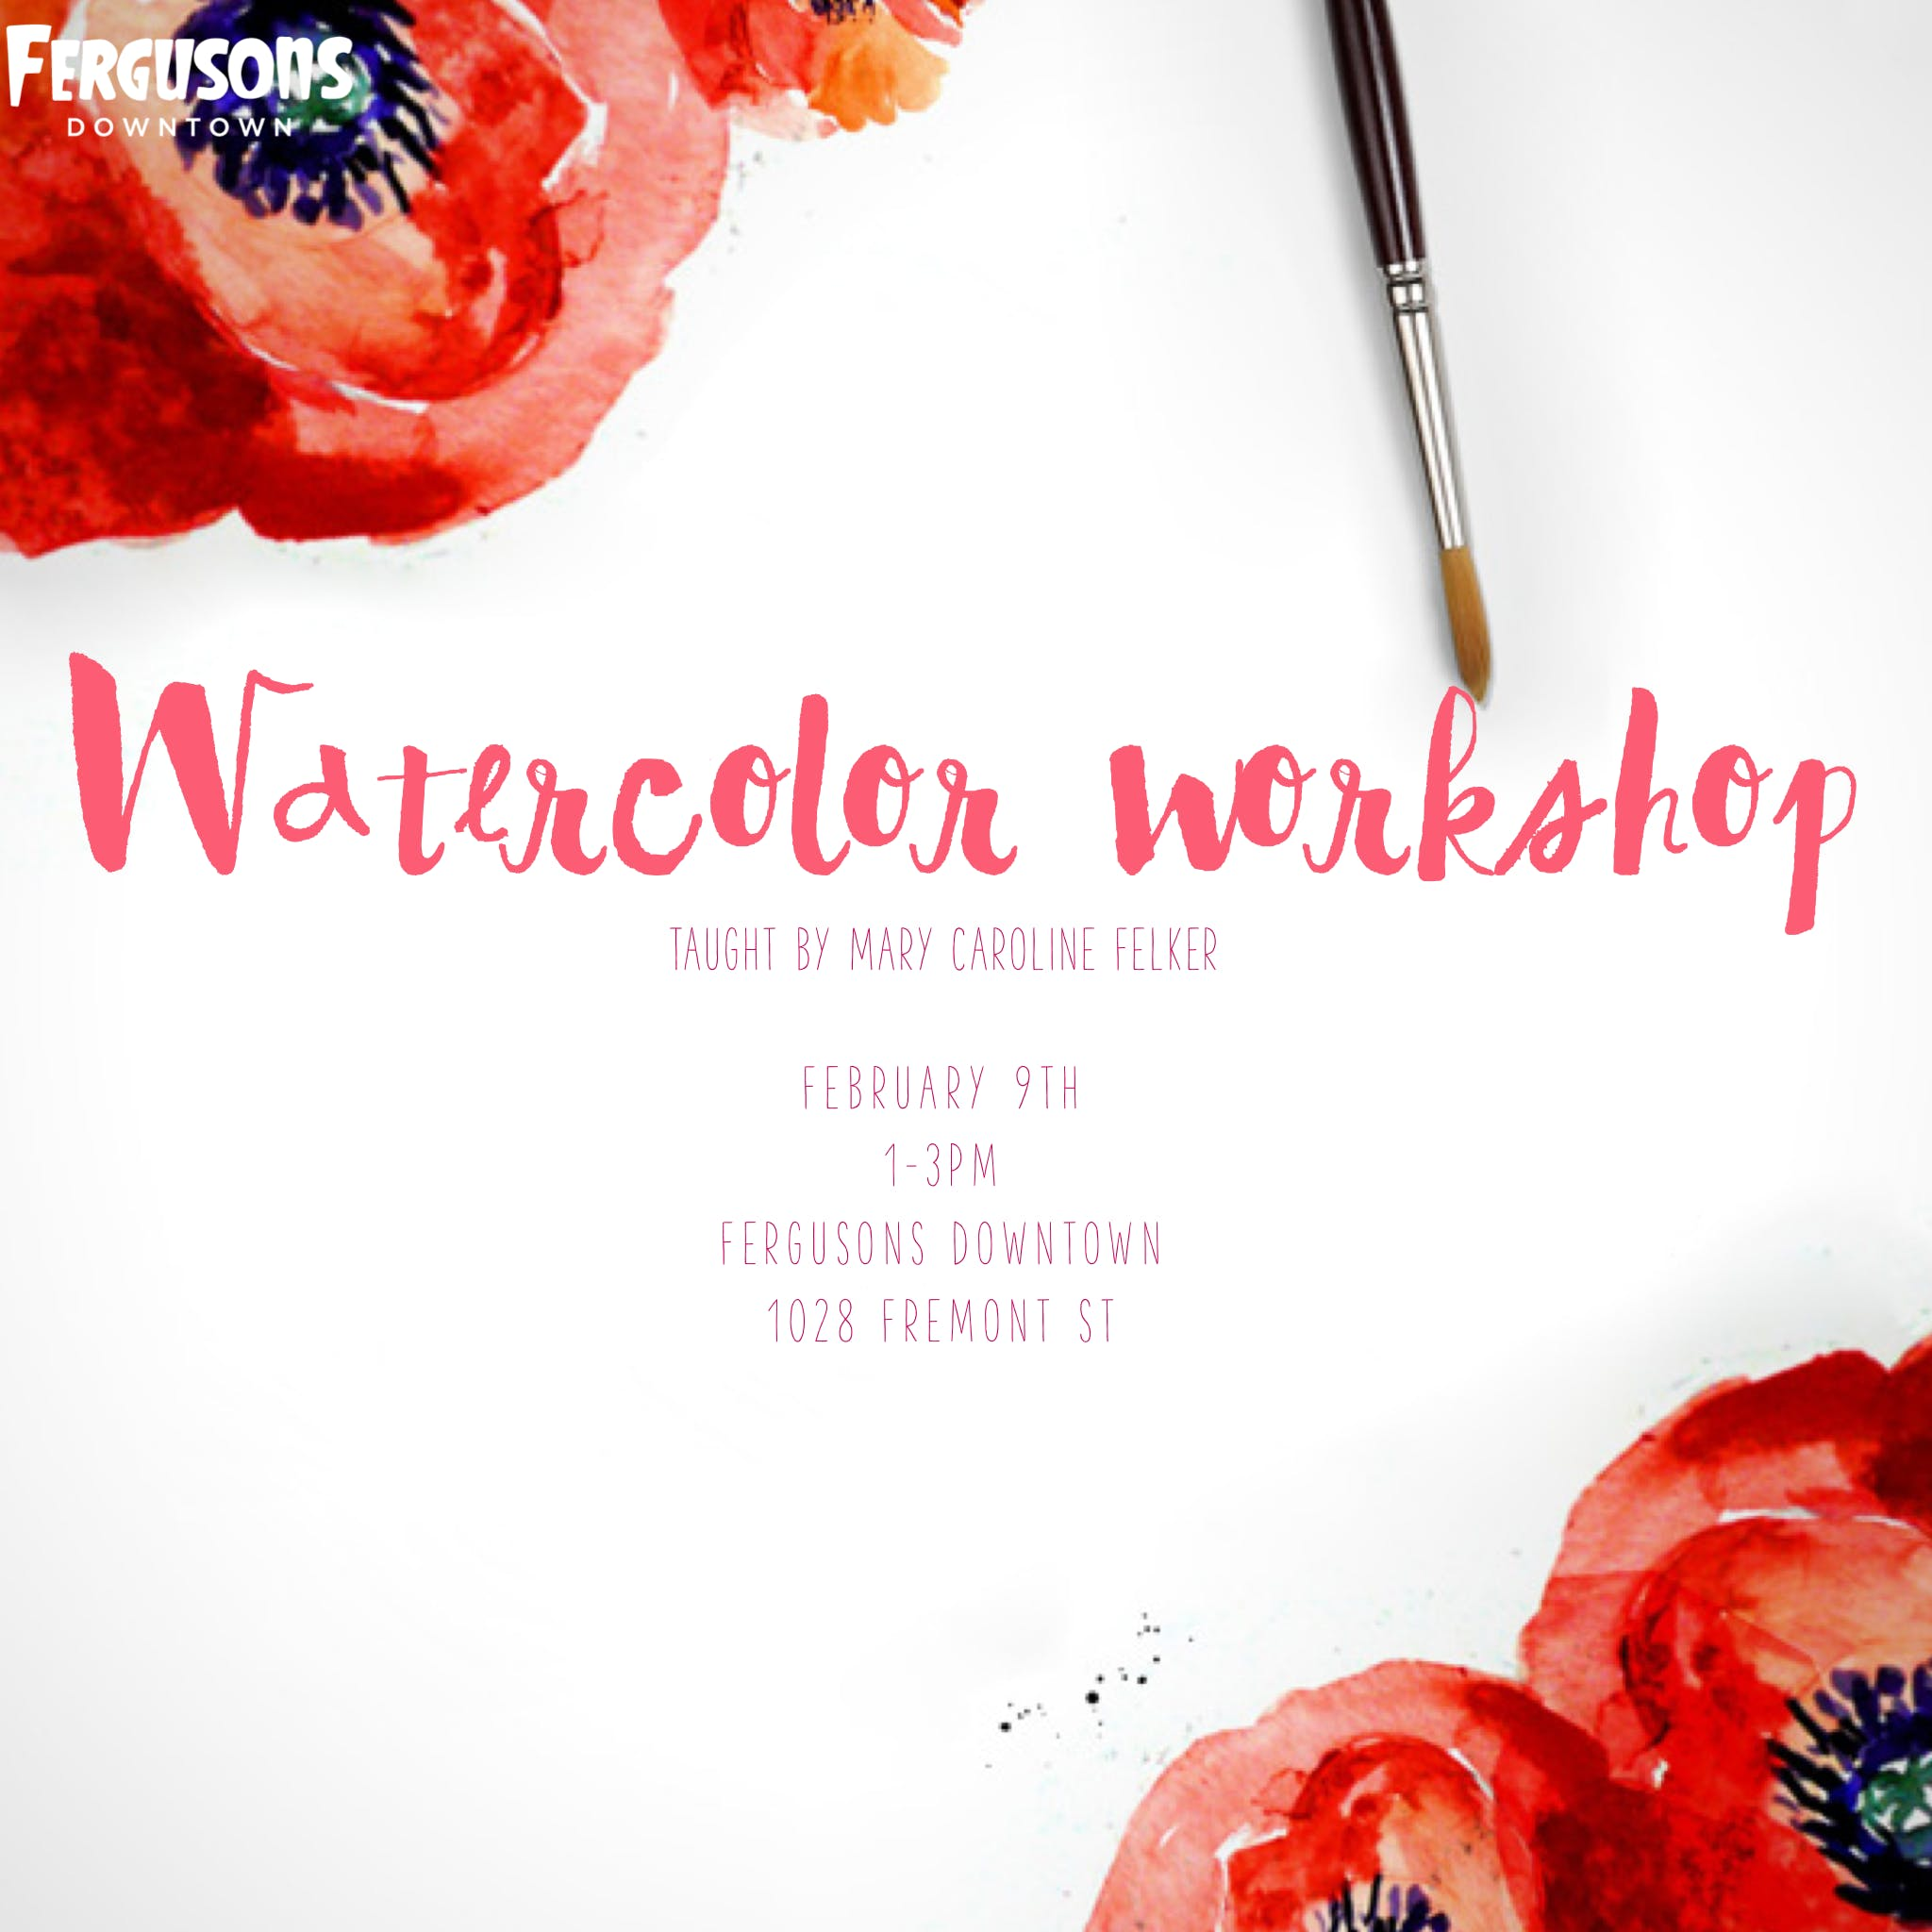 Watercolor Workshop at Fergusons Downtown